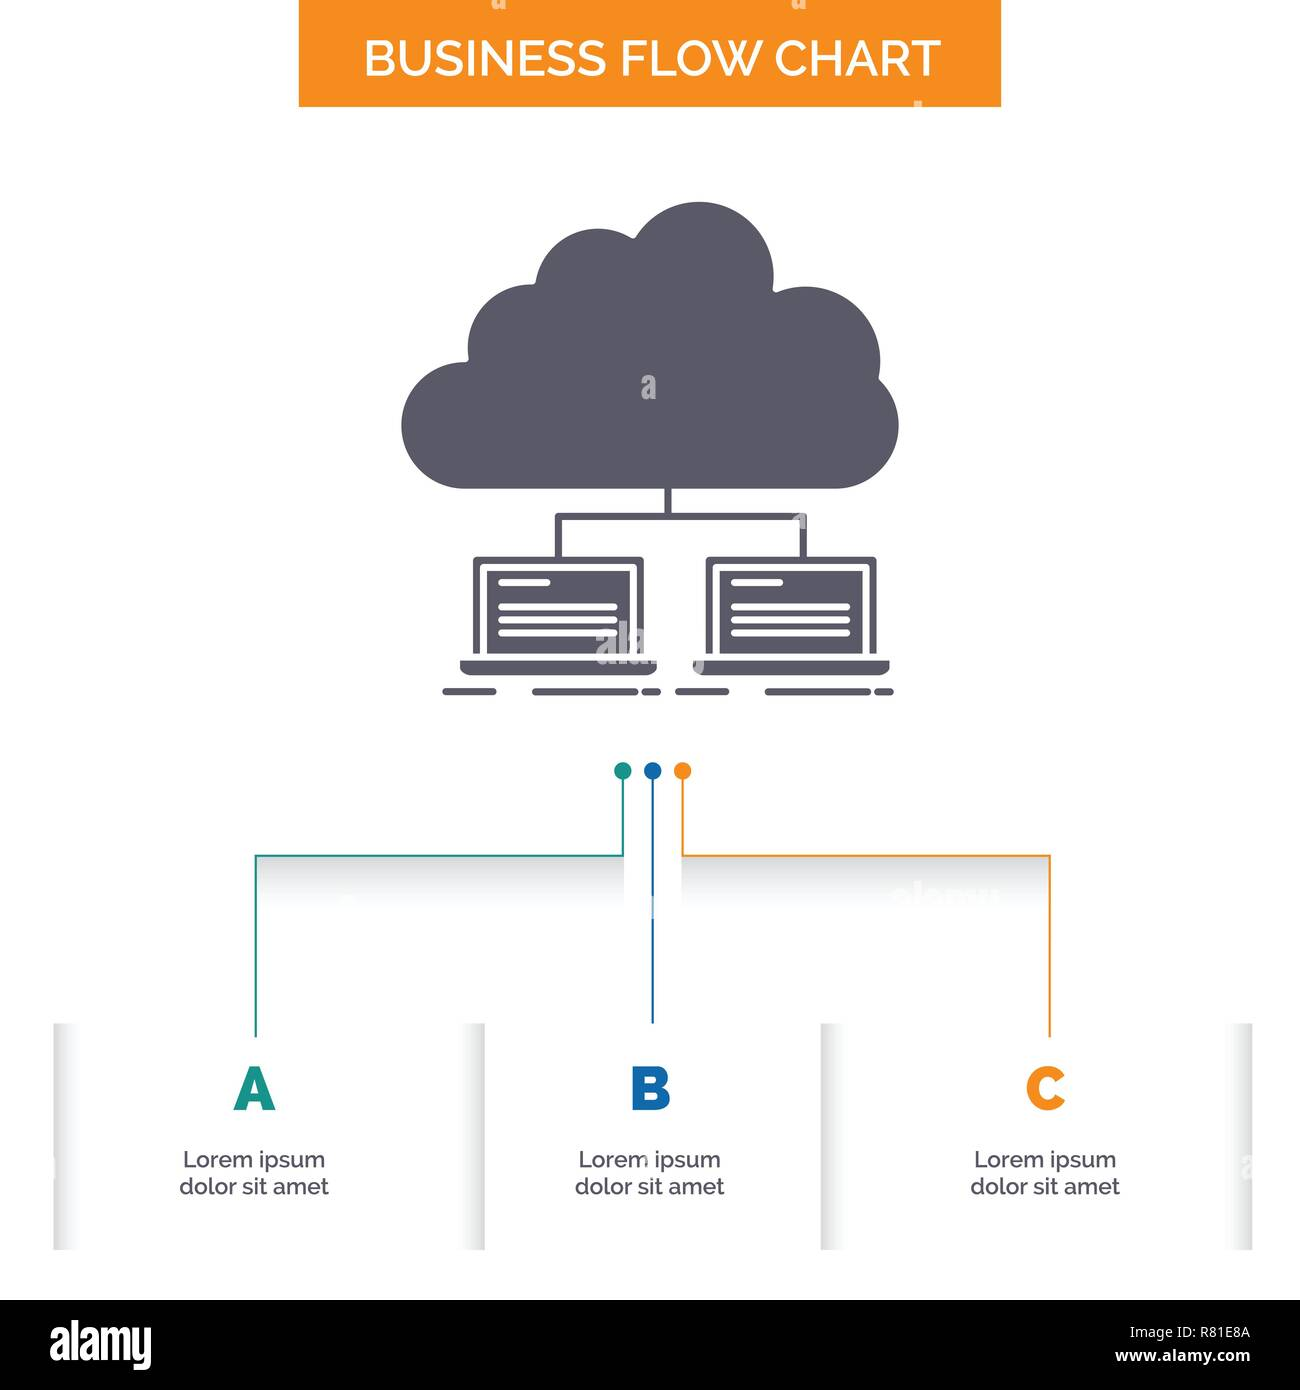 hight resolution of cloud network server internet data business flow chart design with 3 steps glyph icon for presentation background template place for text